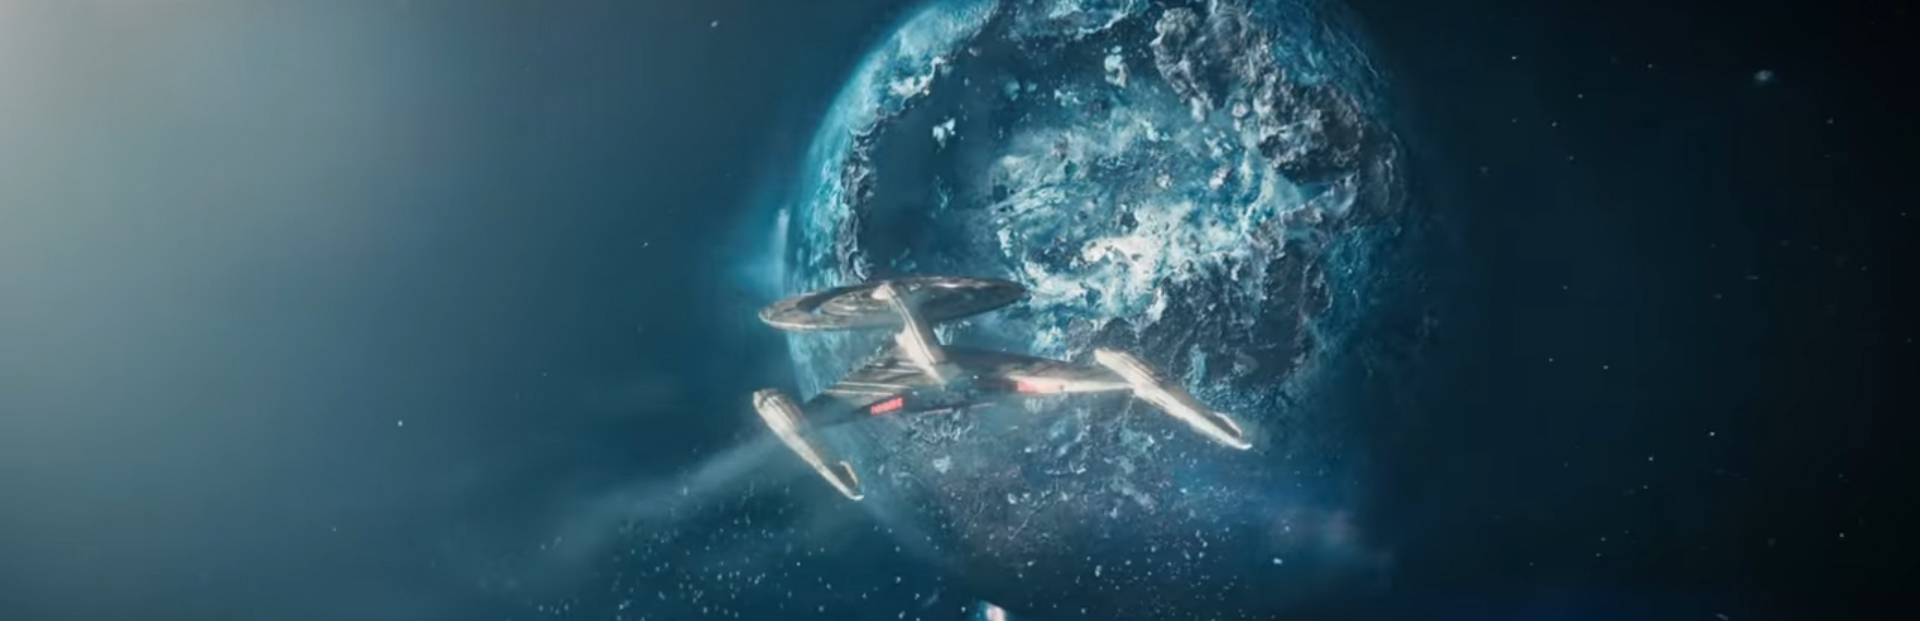 Star Trek Discovery: Far From Home (That Hope is You, Part 2). Image Credit: CBS Studios.